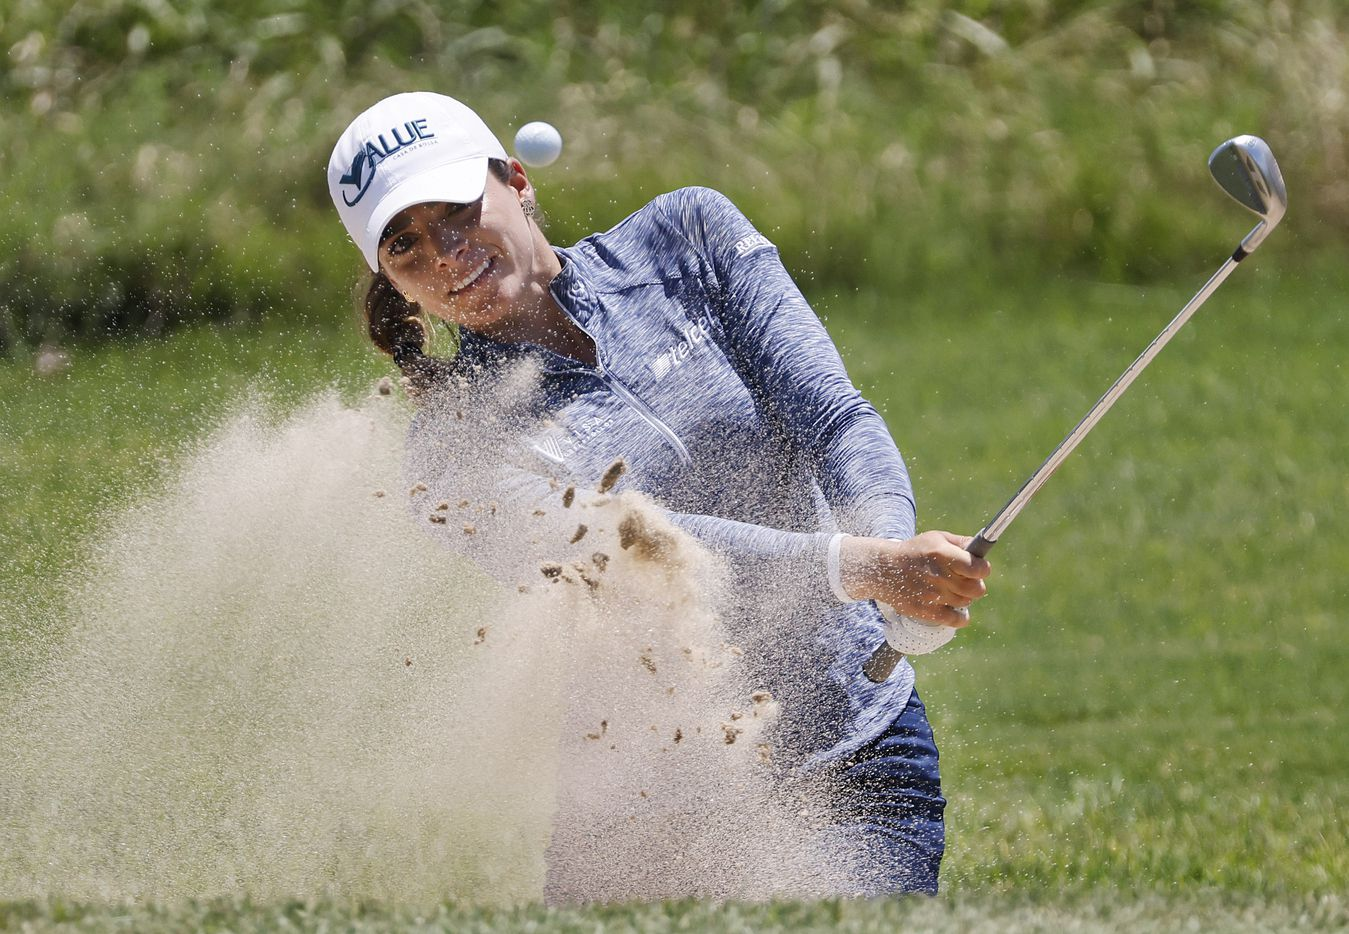 Professional golfer Gaby Lopez fires a shot out of the No. 9 green side bunker during the opening round of the LPGA VOA Classic at the Old American Golf Club in The Colony, Texas, Thursday, July 1, 2021. (Tom Fox/The Dallas Morning News)